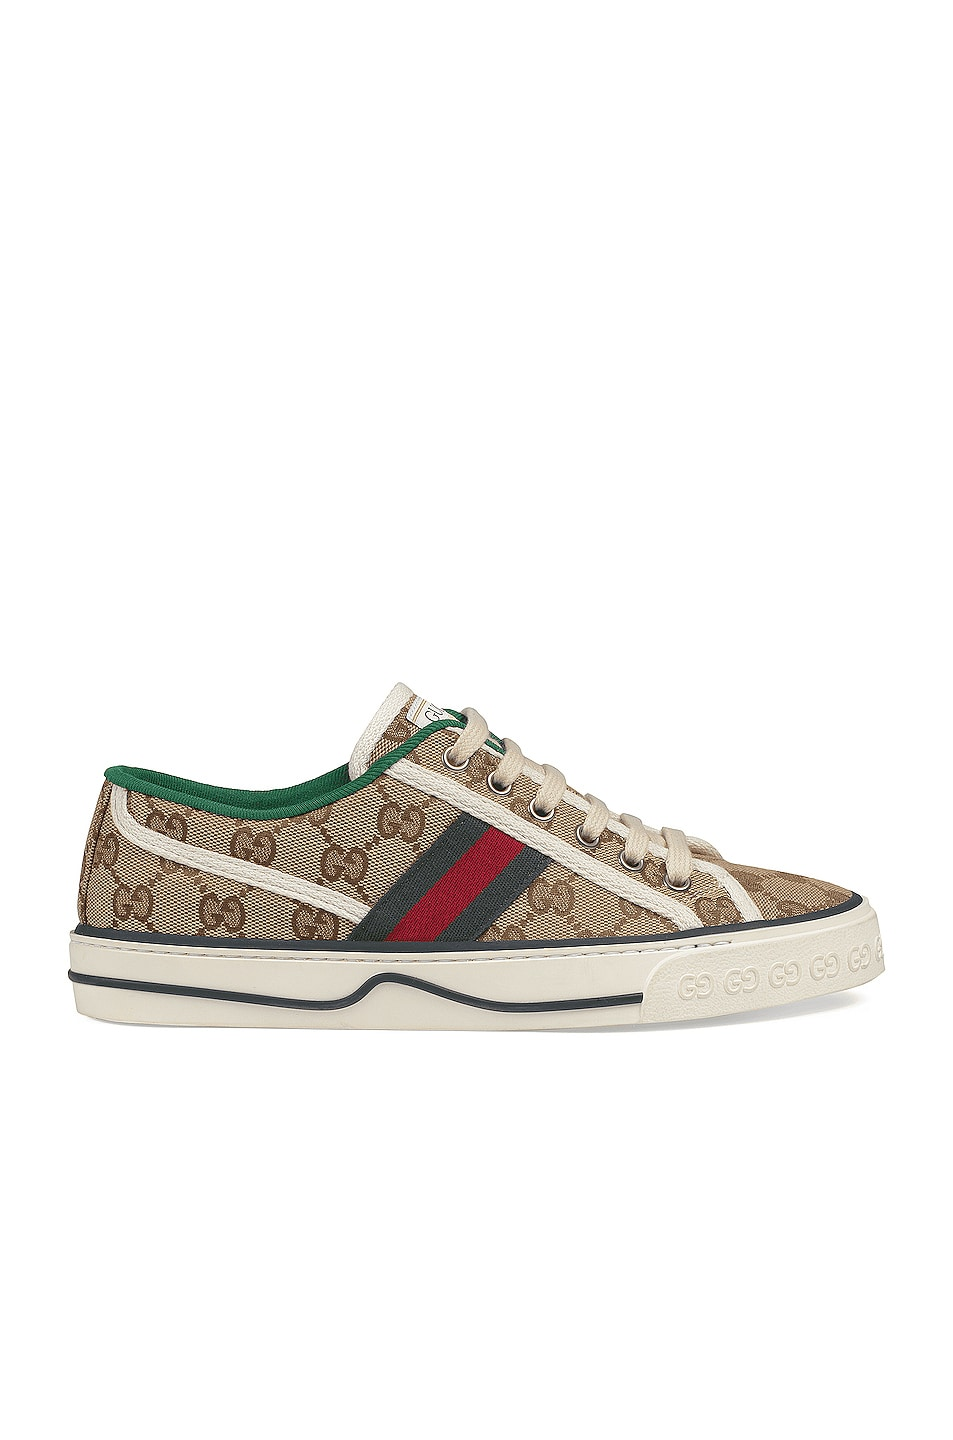 Image 1 of Gucci Gucci Tennis 1977 Sneakers in Beige Ebony & Mystic White